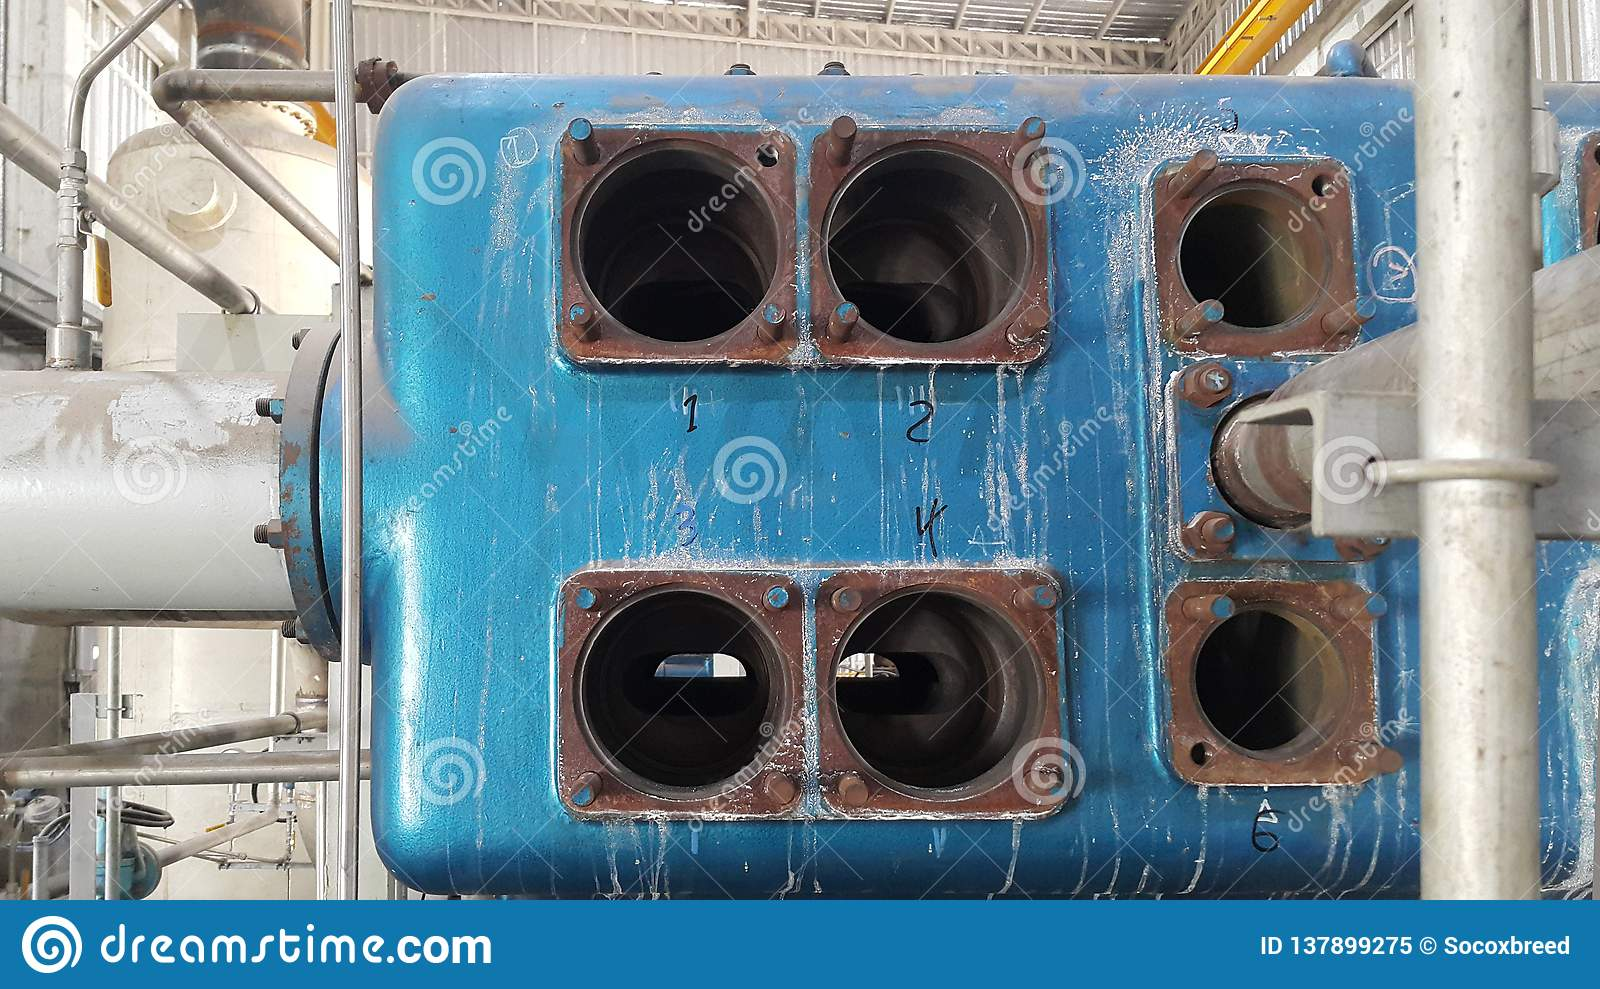 Old electrical motor with blue vacuum and blowers inside old factory